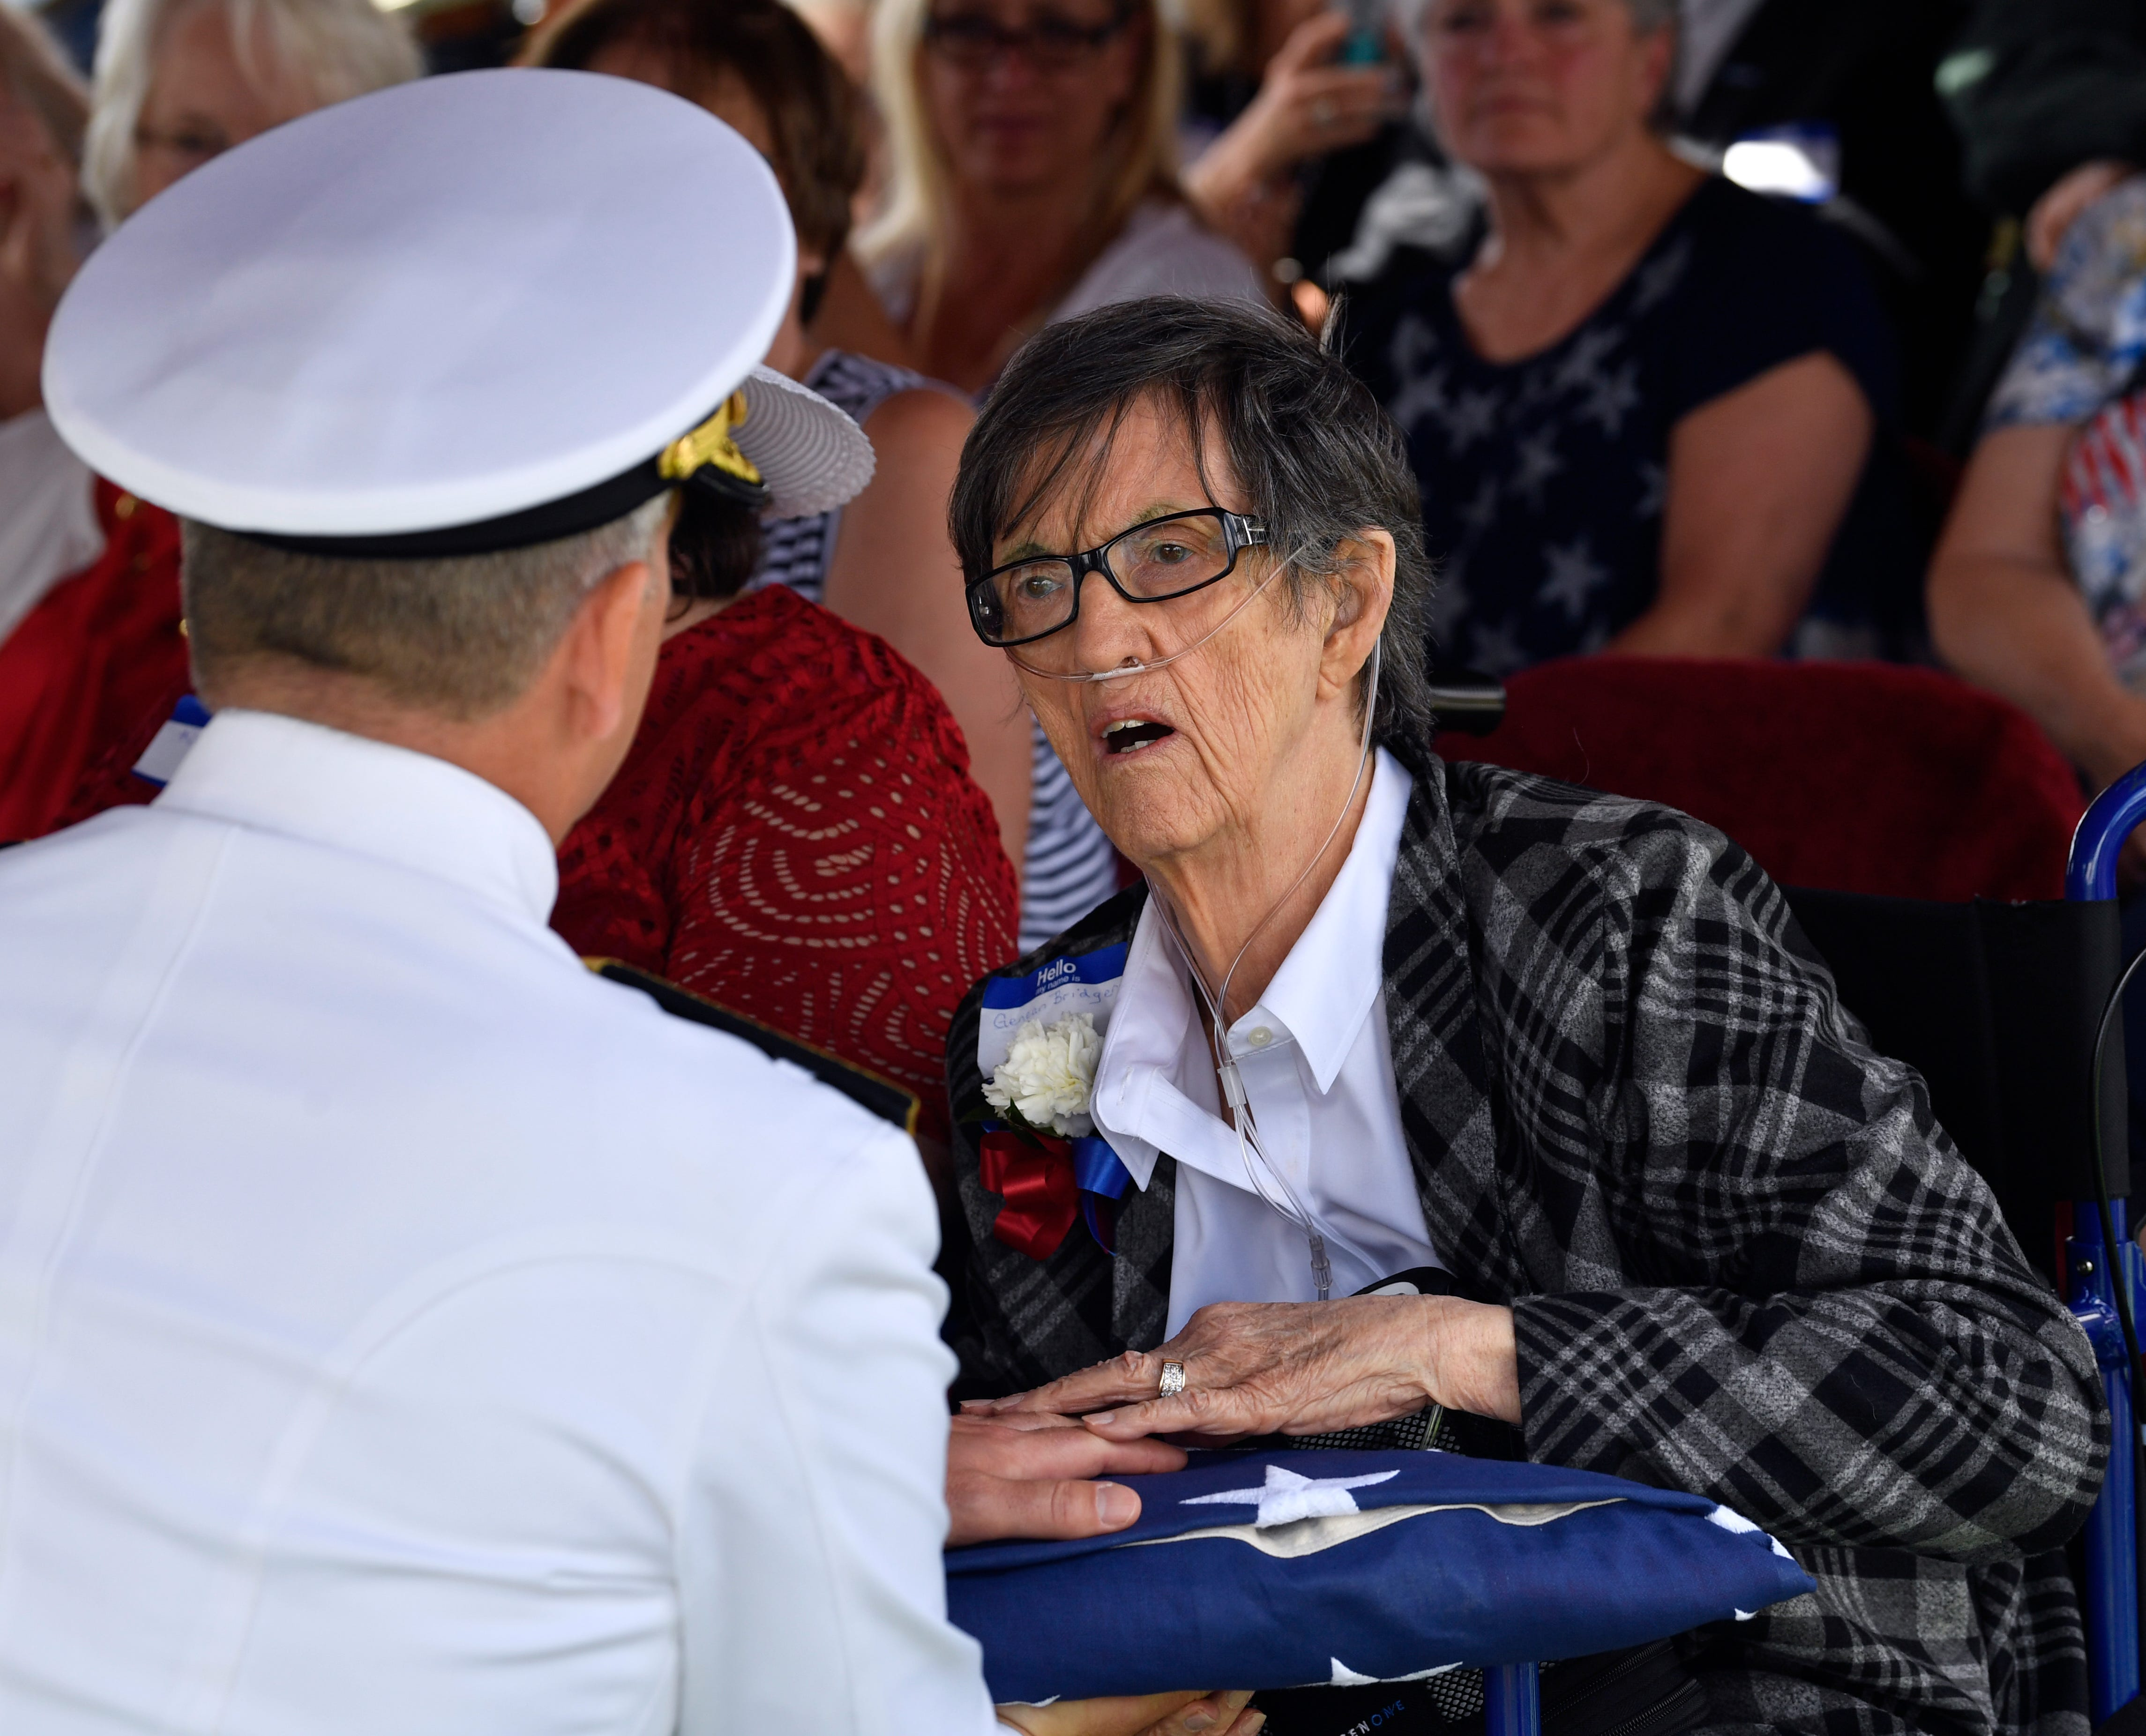 Rear Admiral Ted LeClair, the Deputy Commander of the U.S. 7th Fleet, hands the folded flag to Genean Bridger, the niece of Seaman 1st Class Hale McKissack who was buried Saturday, May 4, 2019, in Winters, Texas. McKissack died during the Japanese attack on Pearl Harbor on Dec. 7, 1941, and it wasn't until 2015 that his remains were identified.